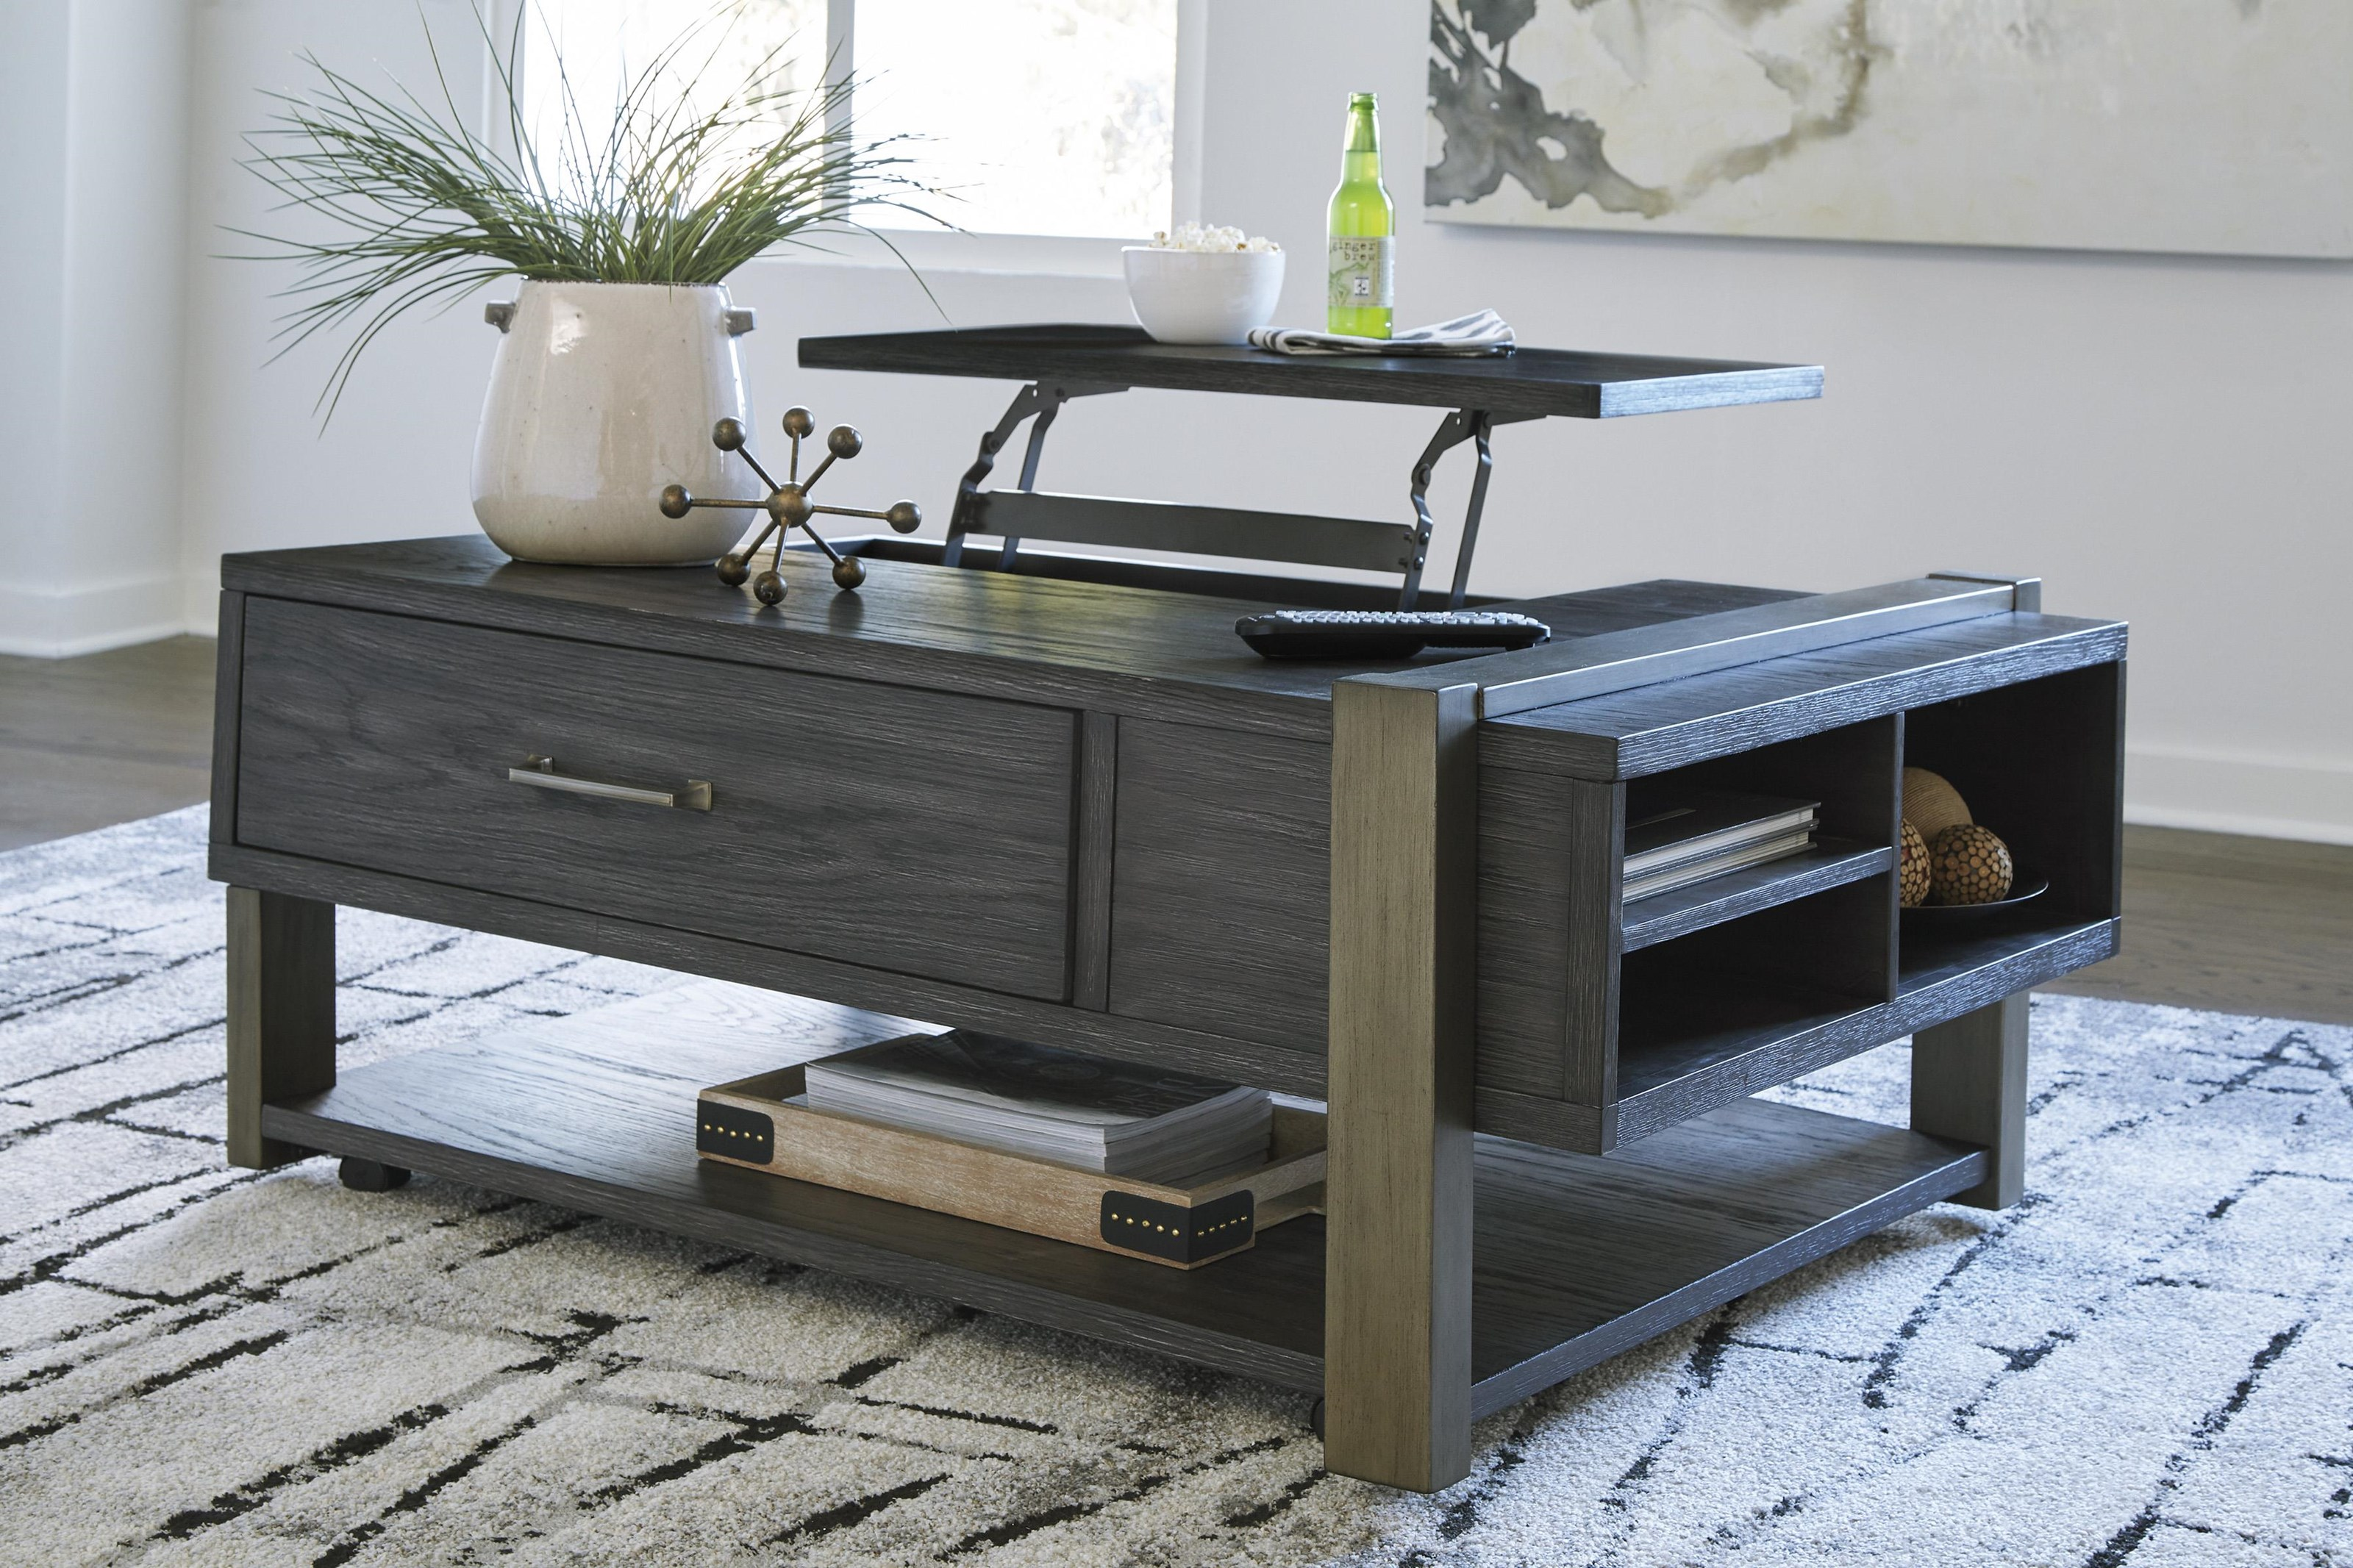 Forleeza 3 Piece Coffee Table Set by Signature Design by Ashley at Sam Levitz Outlet